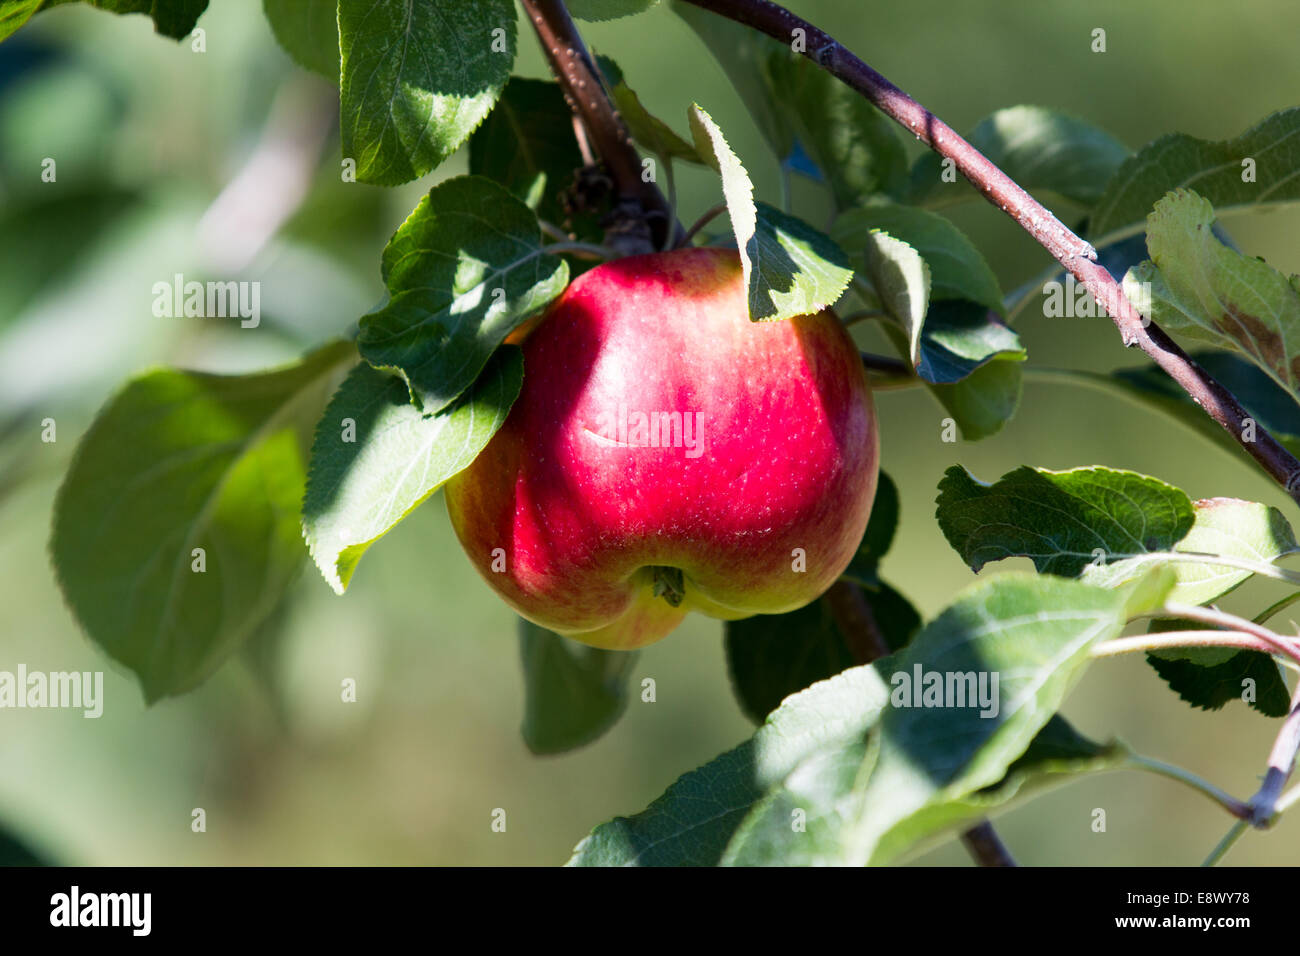 One apple - Stock Image